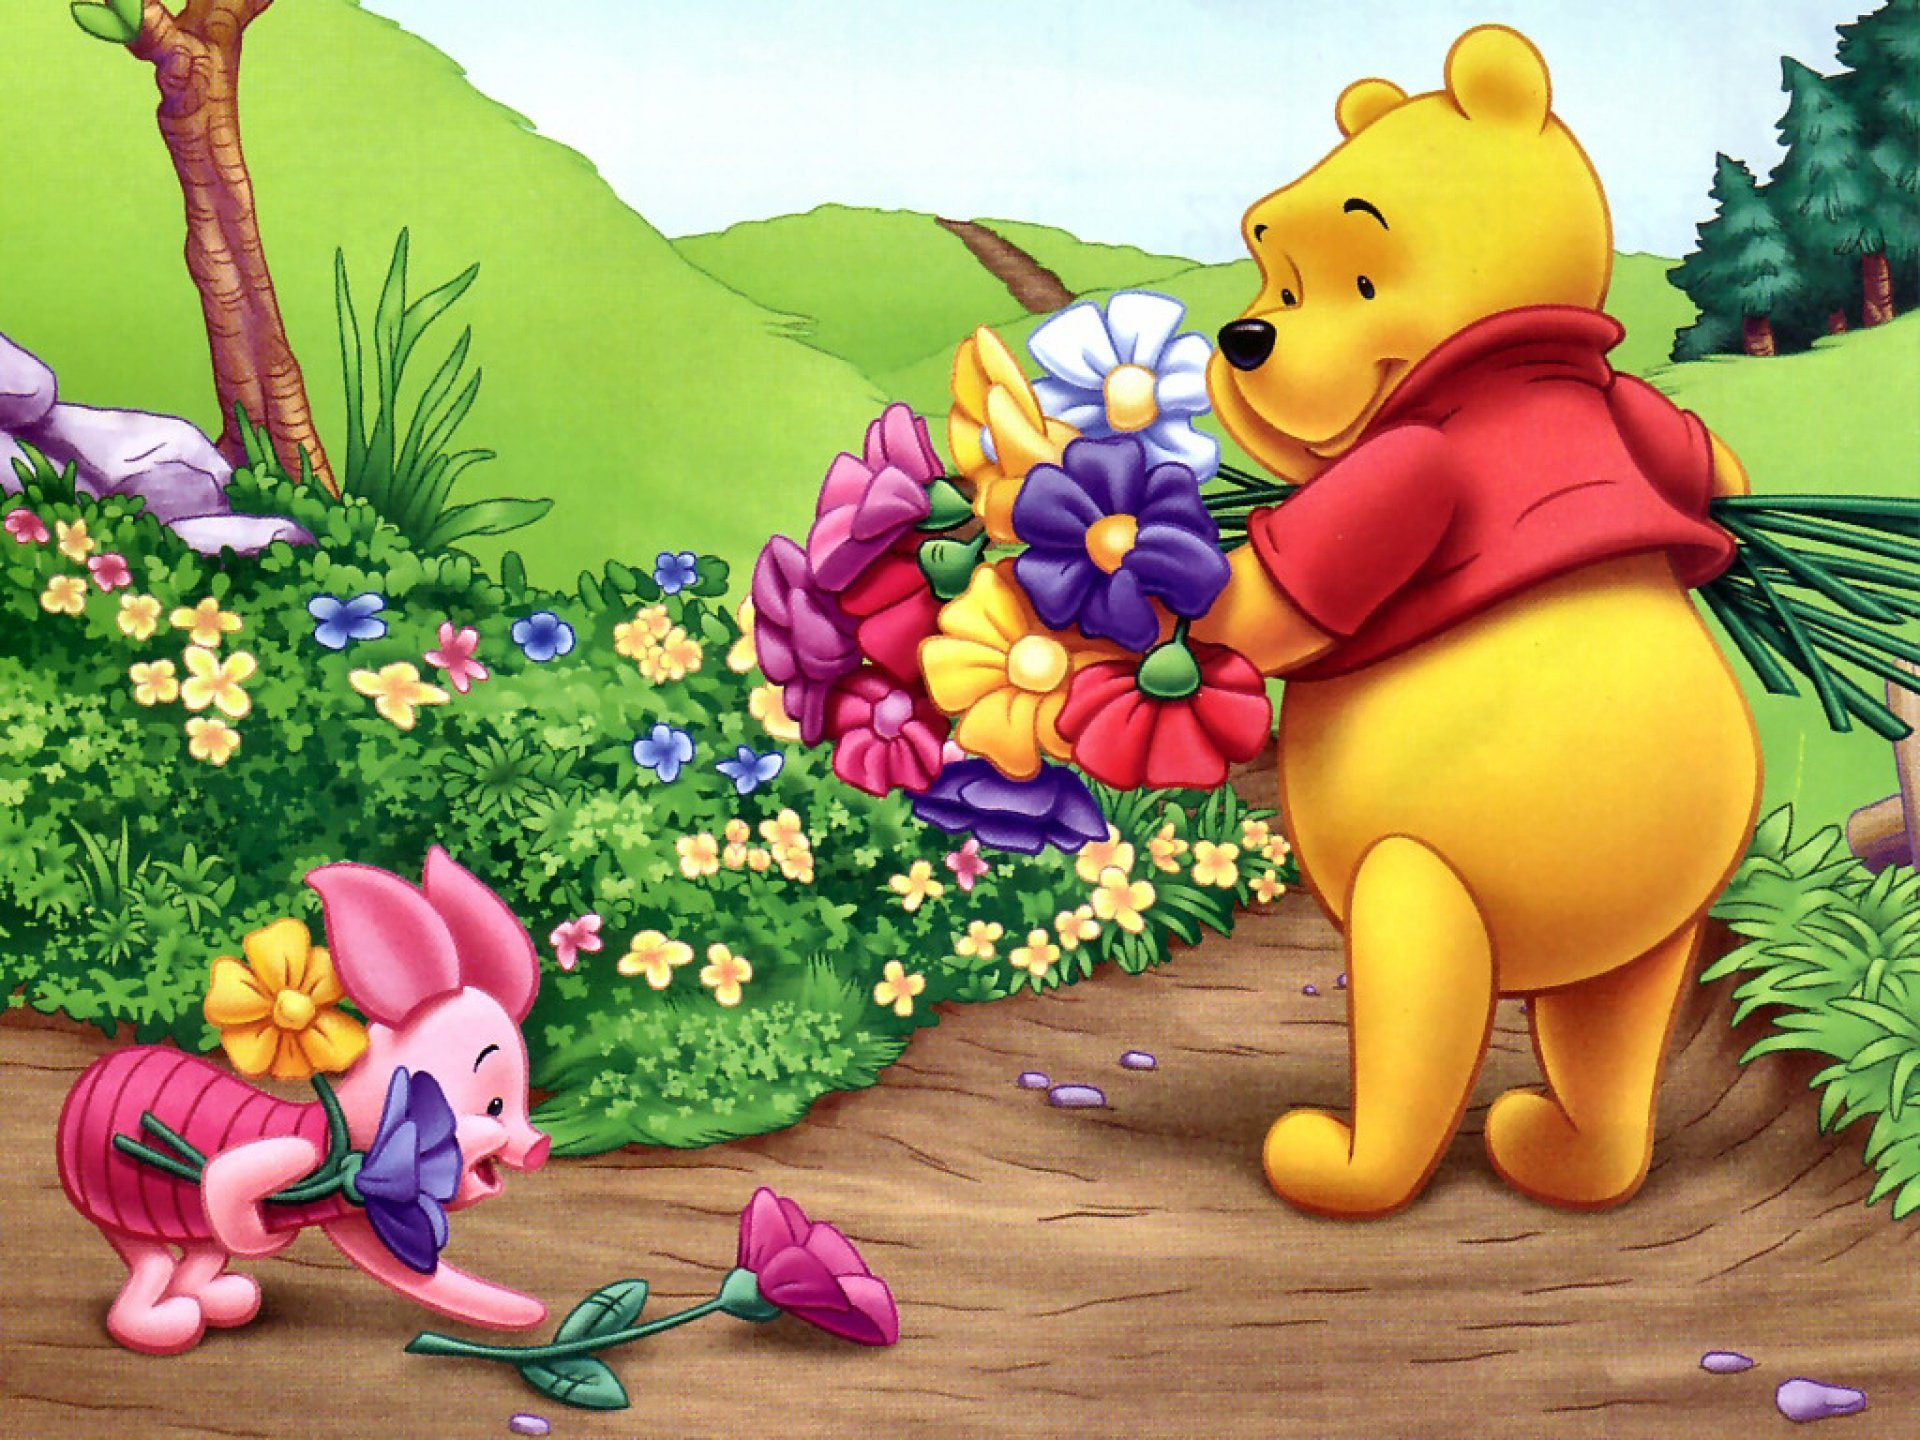 Best Winnie The Pooh wallpaper ID:74407 for High Resolution hd 1920x1440 desktop